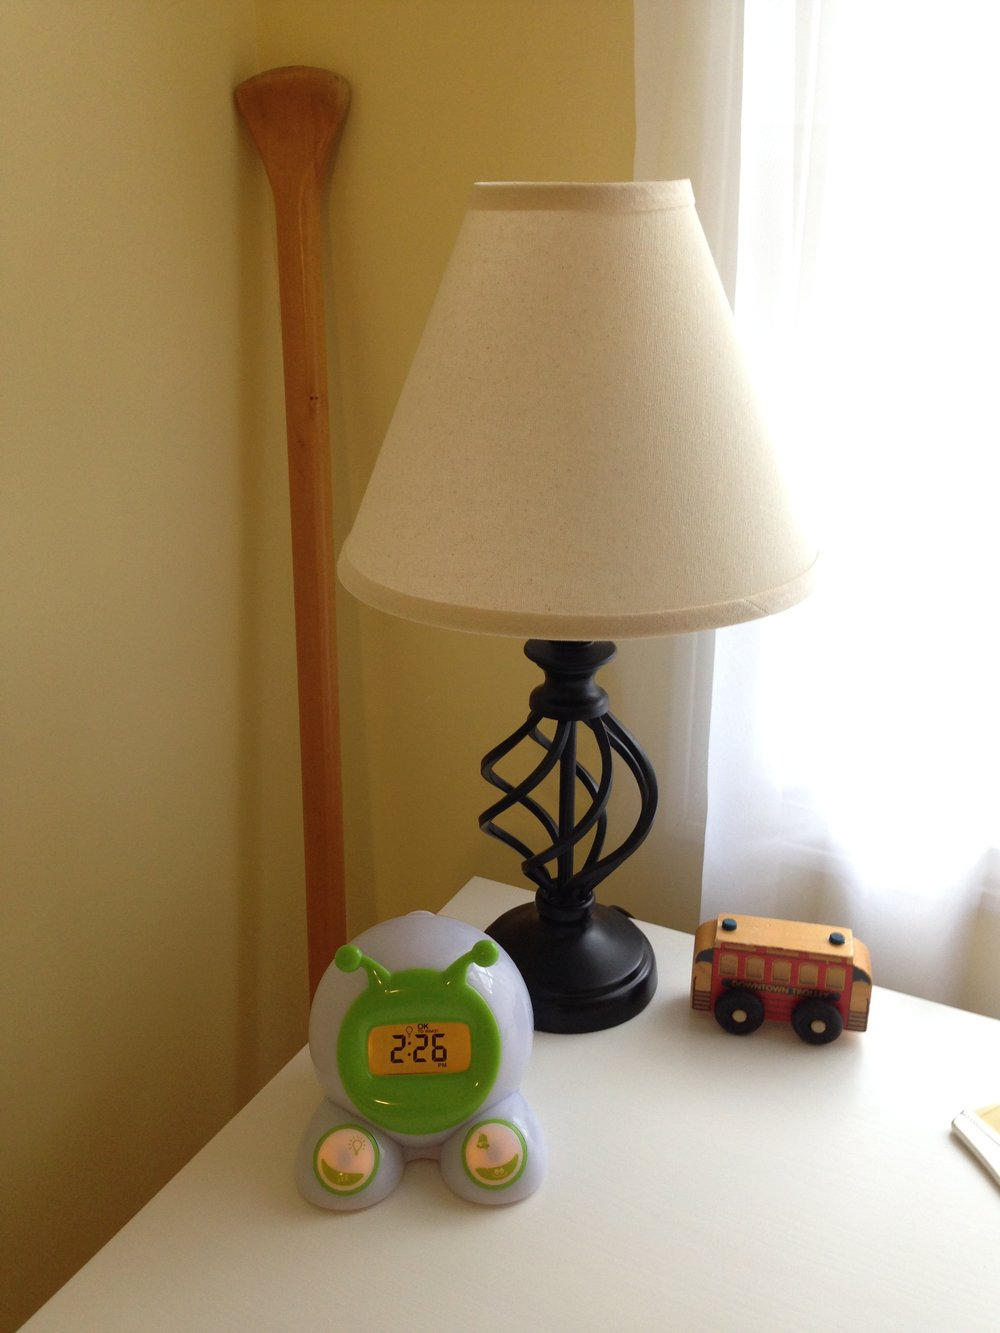 Ready to Wake Clock is an important part of our toddler's room.